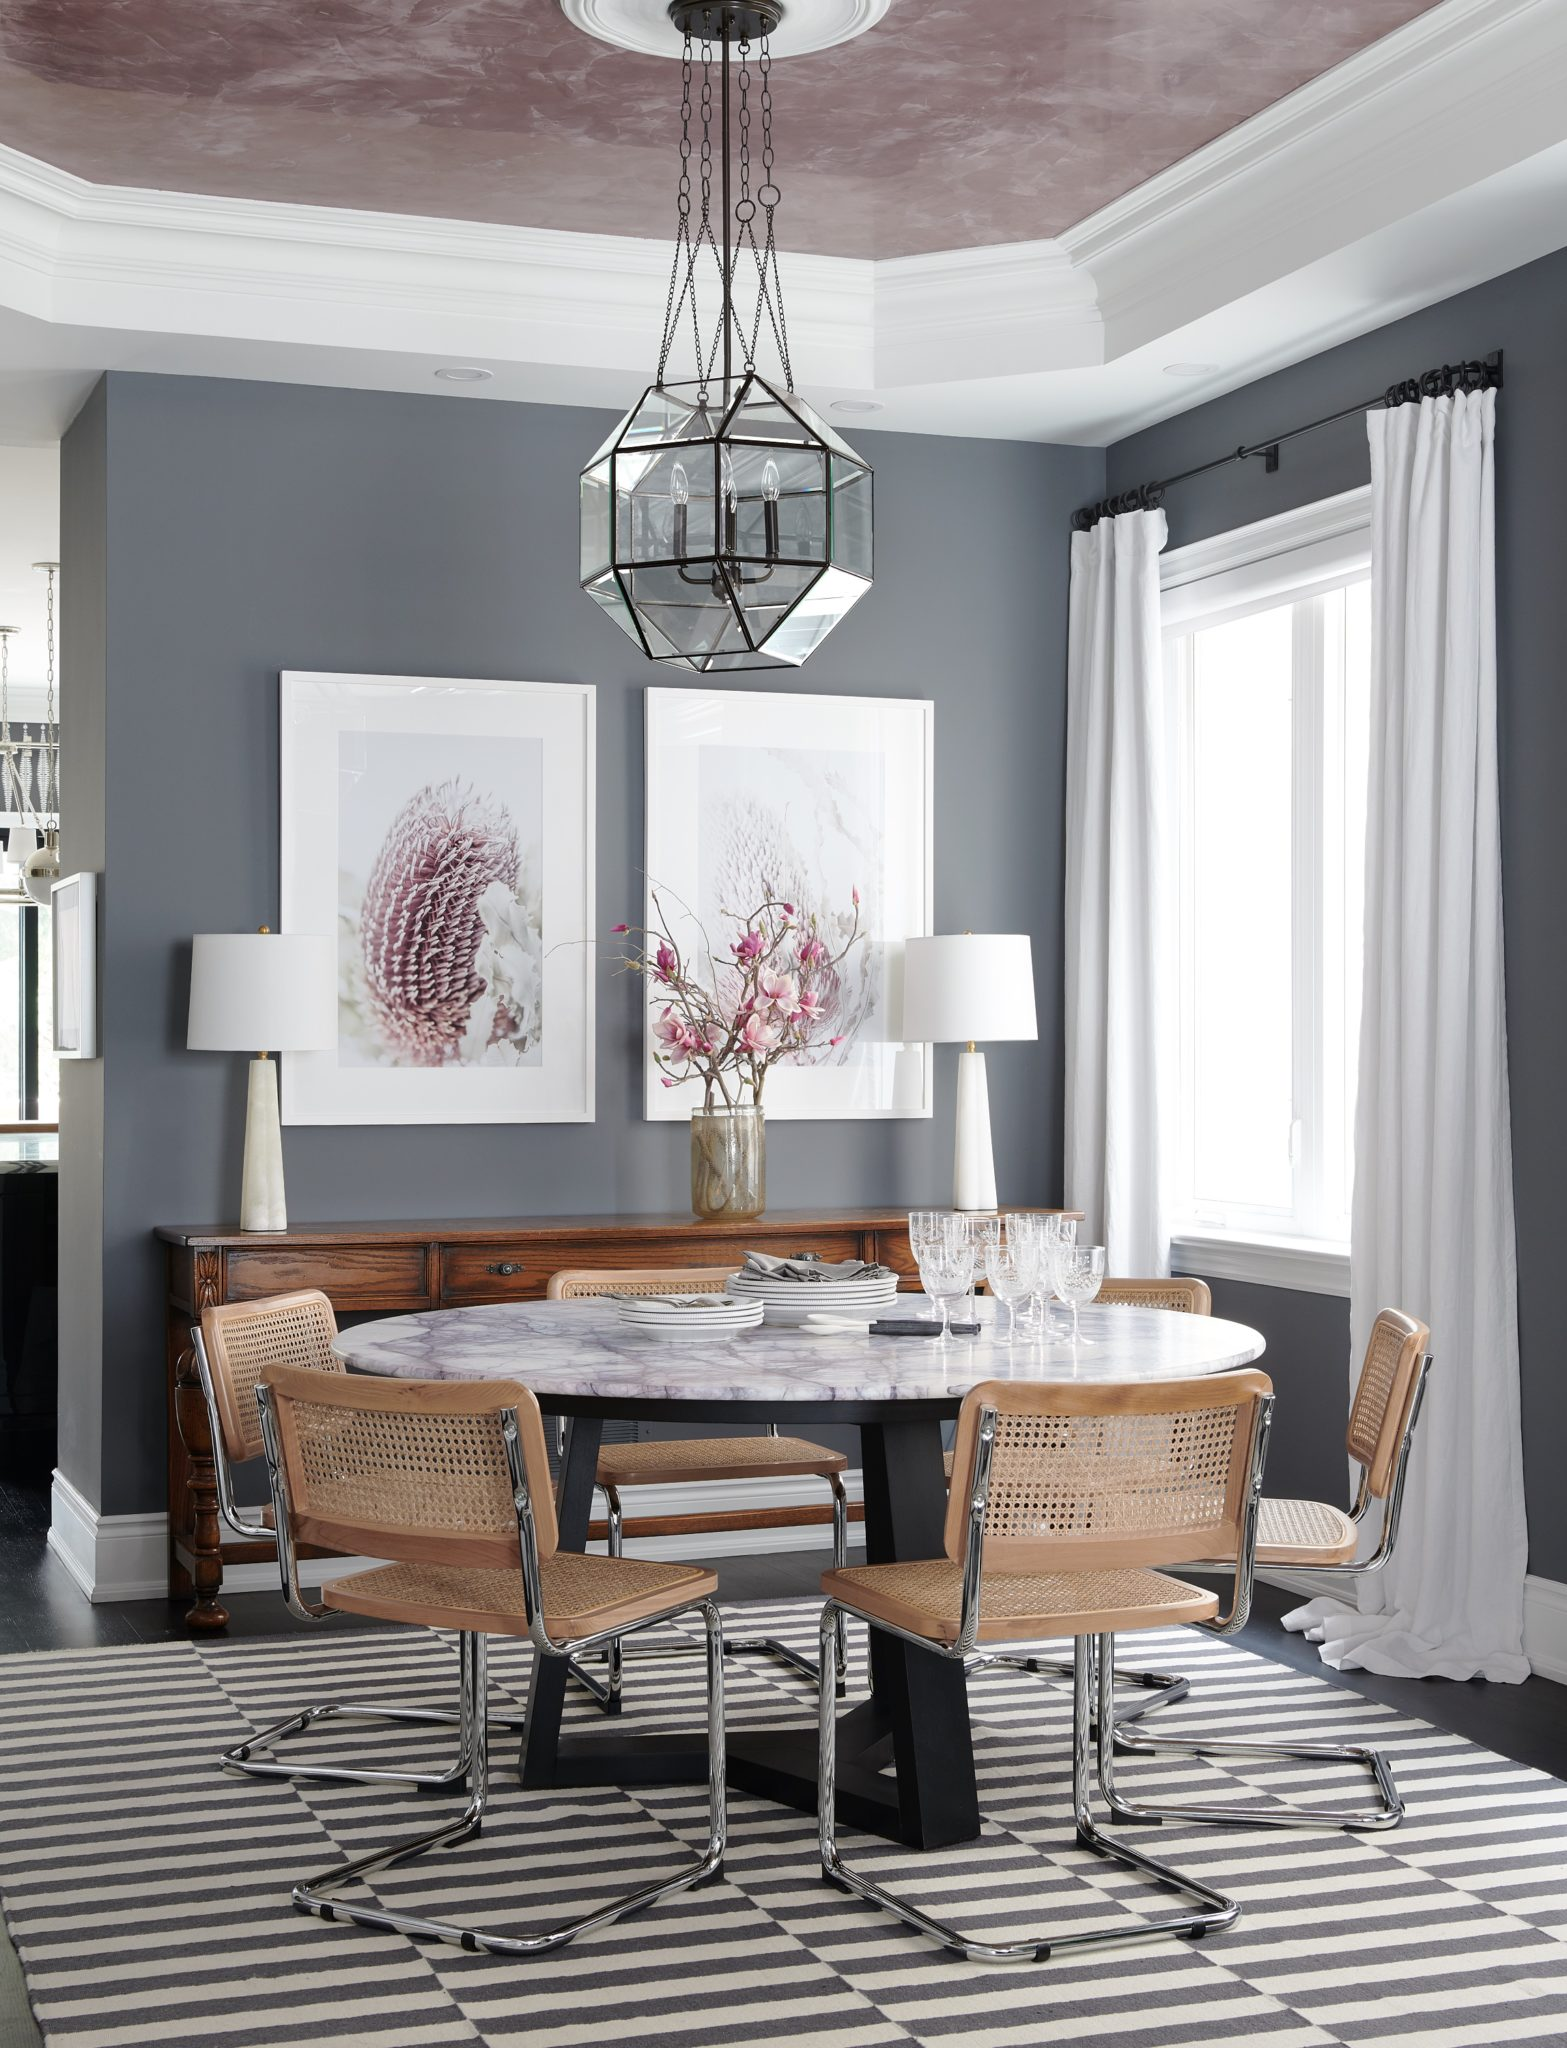 Mid-Century Dining Room with textured ceiling, glass pendant, grey palette by Estee Design